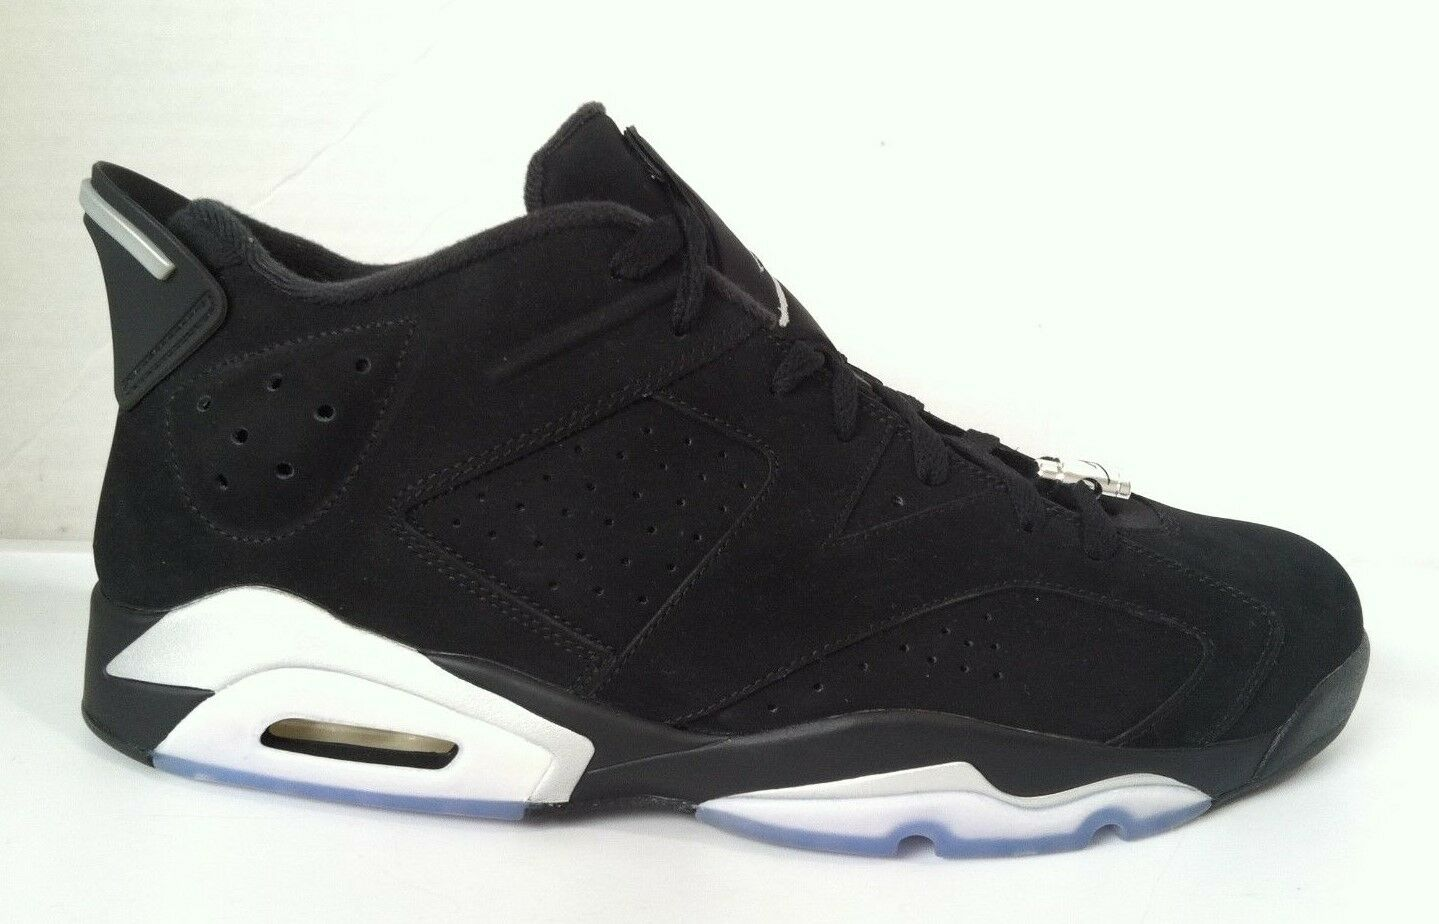 NWOBX Men's NIKE AIR JORDAN RETRO 6 Low Chrome Black White SZ 14 (304401-003)